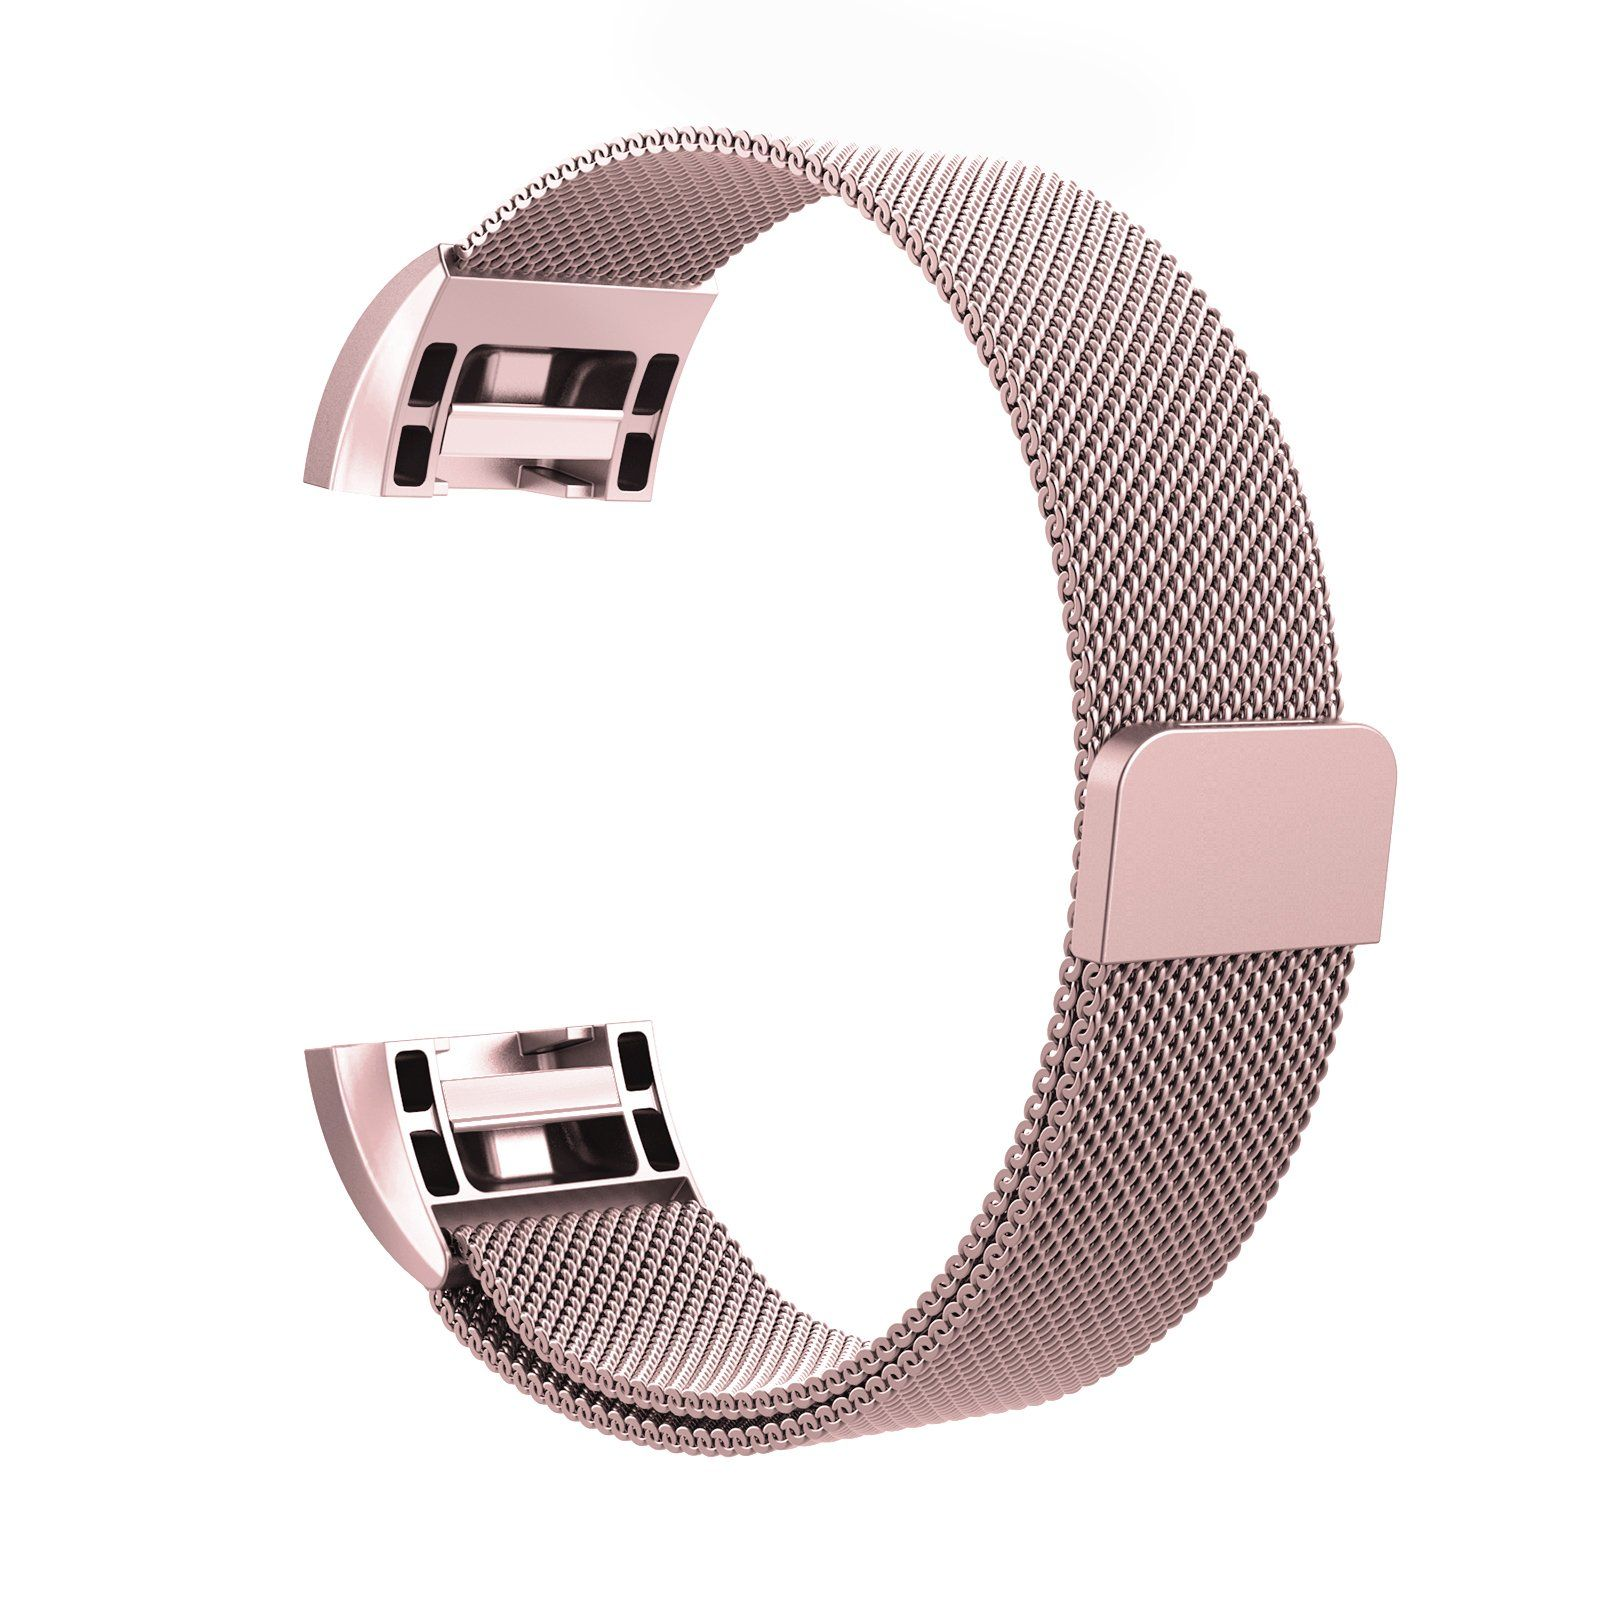 Linxure Milanese Replacement  Strap for the Fitbit Charge 2 - Large | Monthly Madness